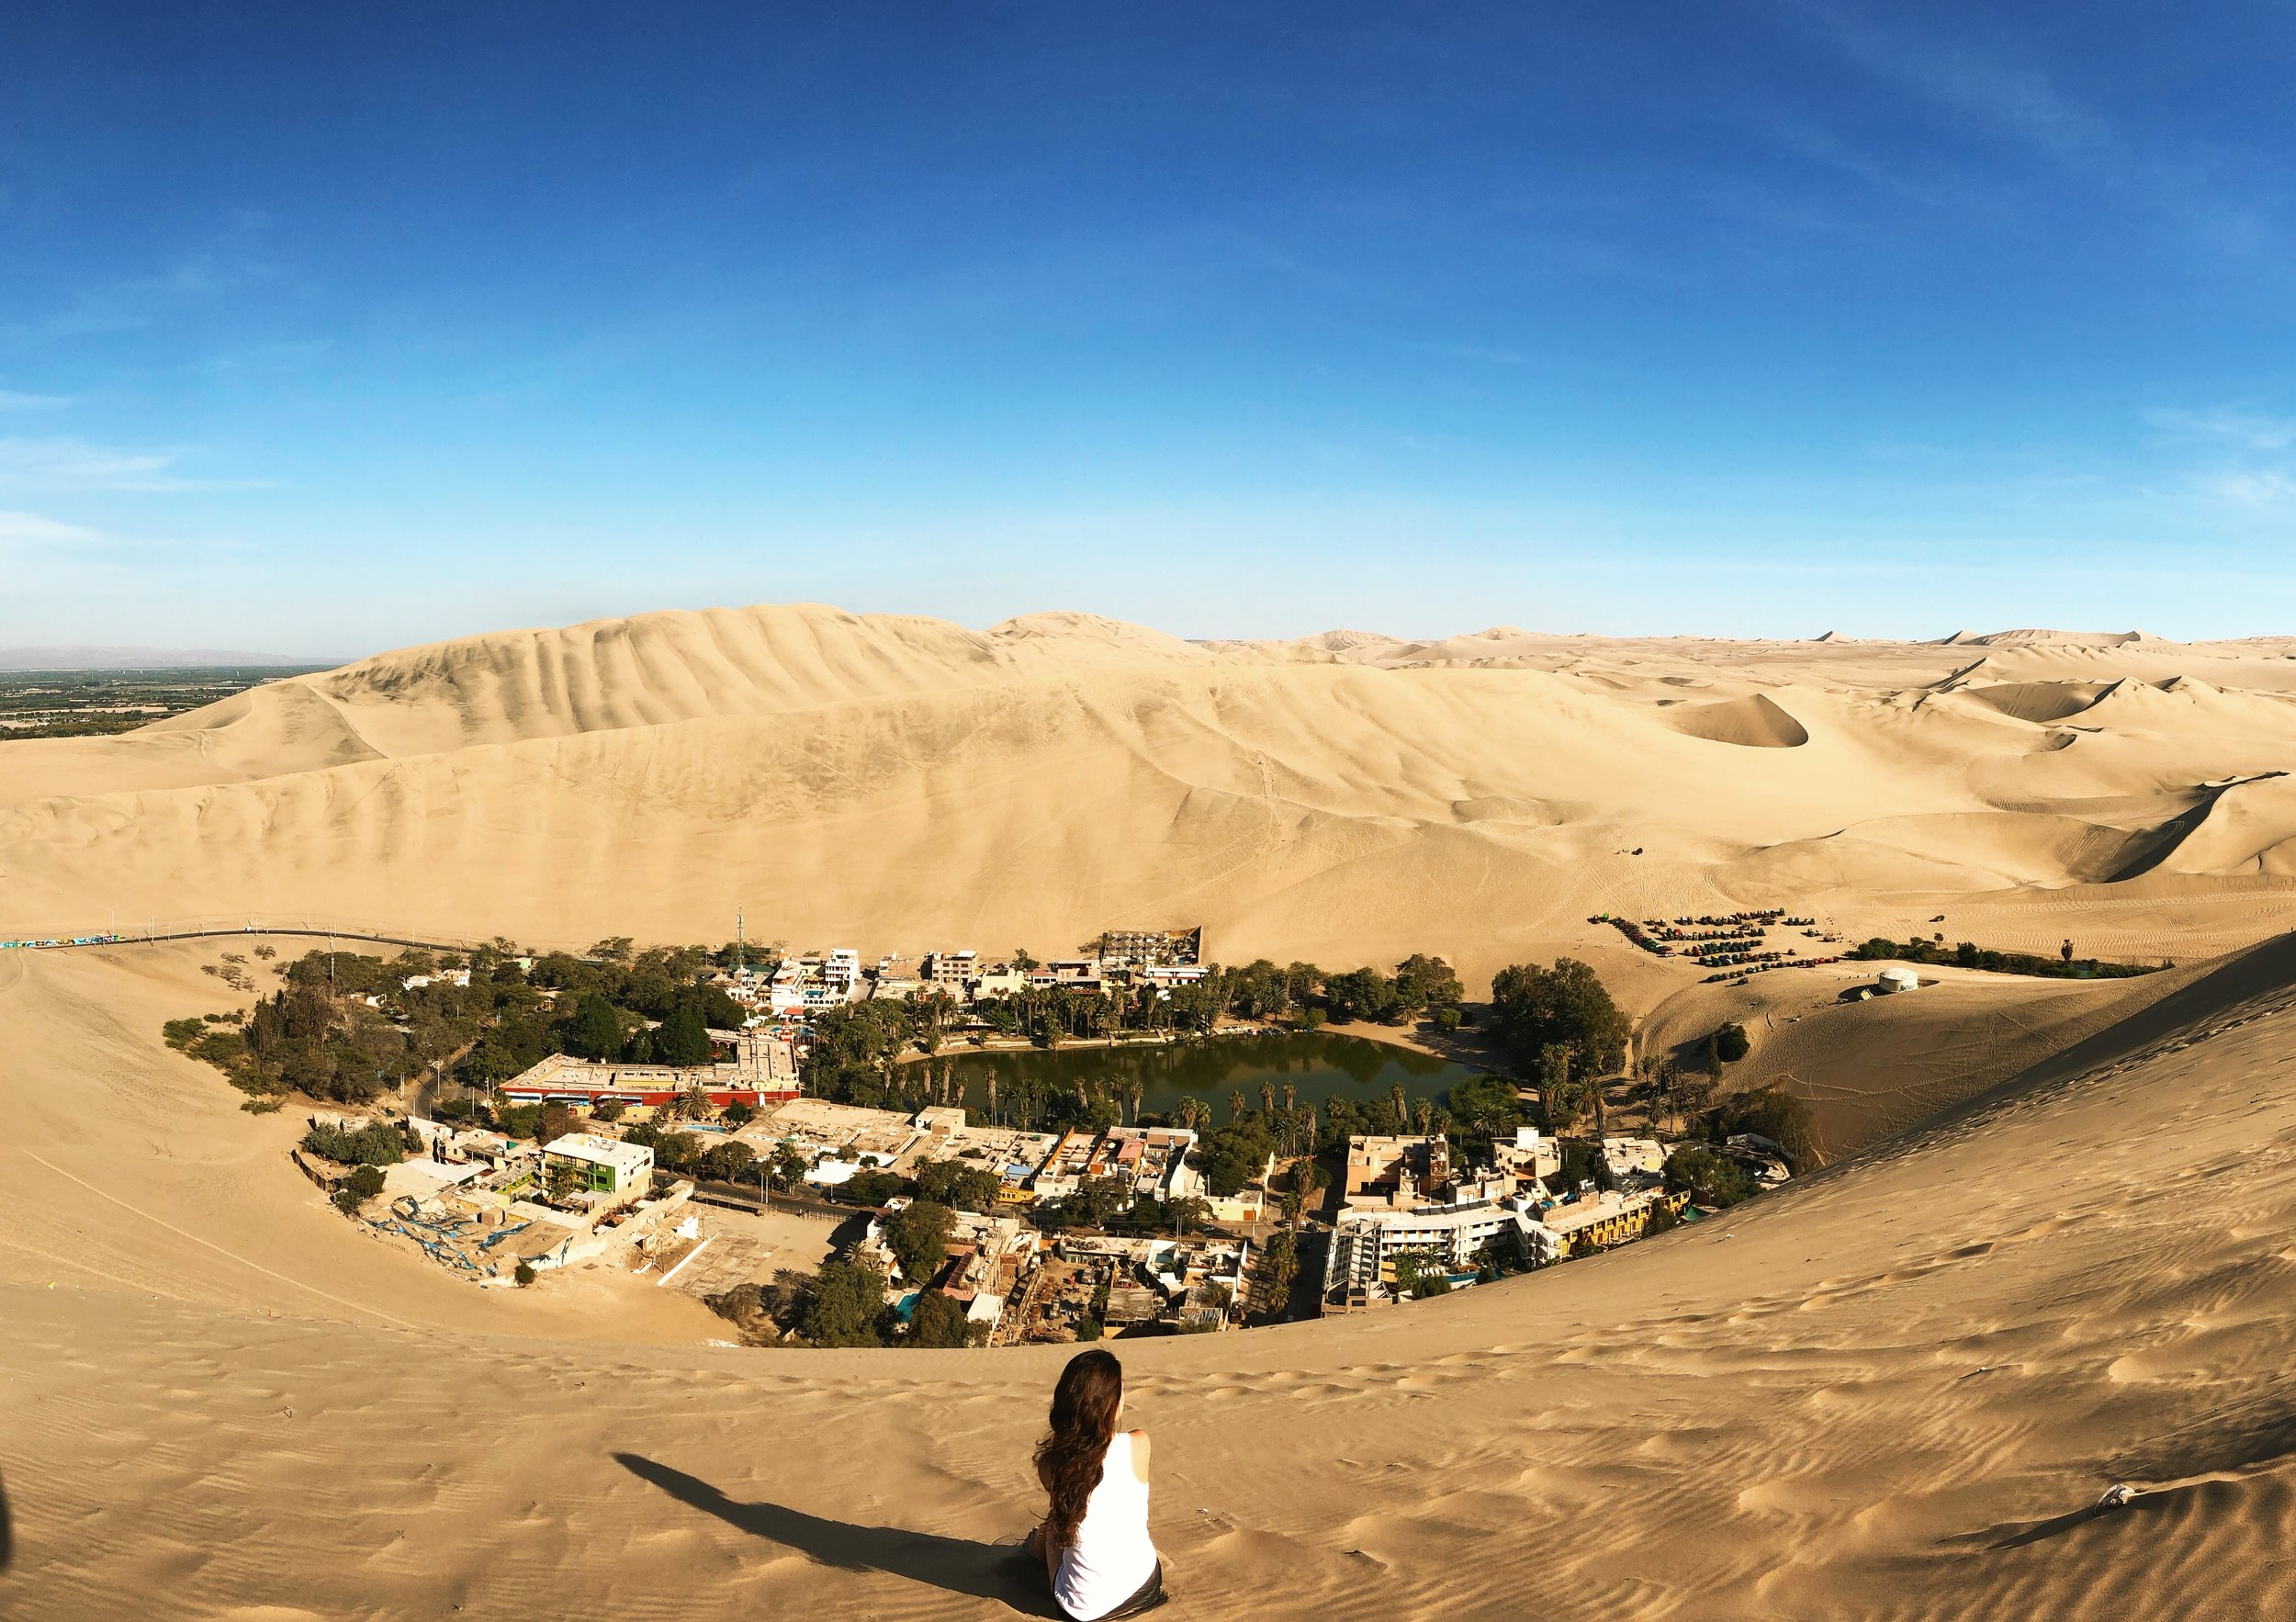 View of Huacachina from above